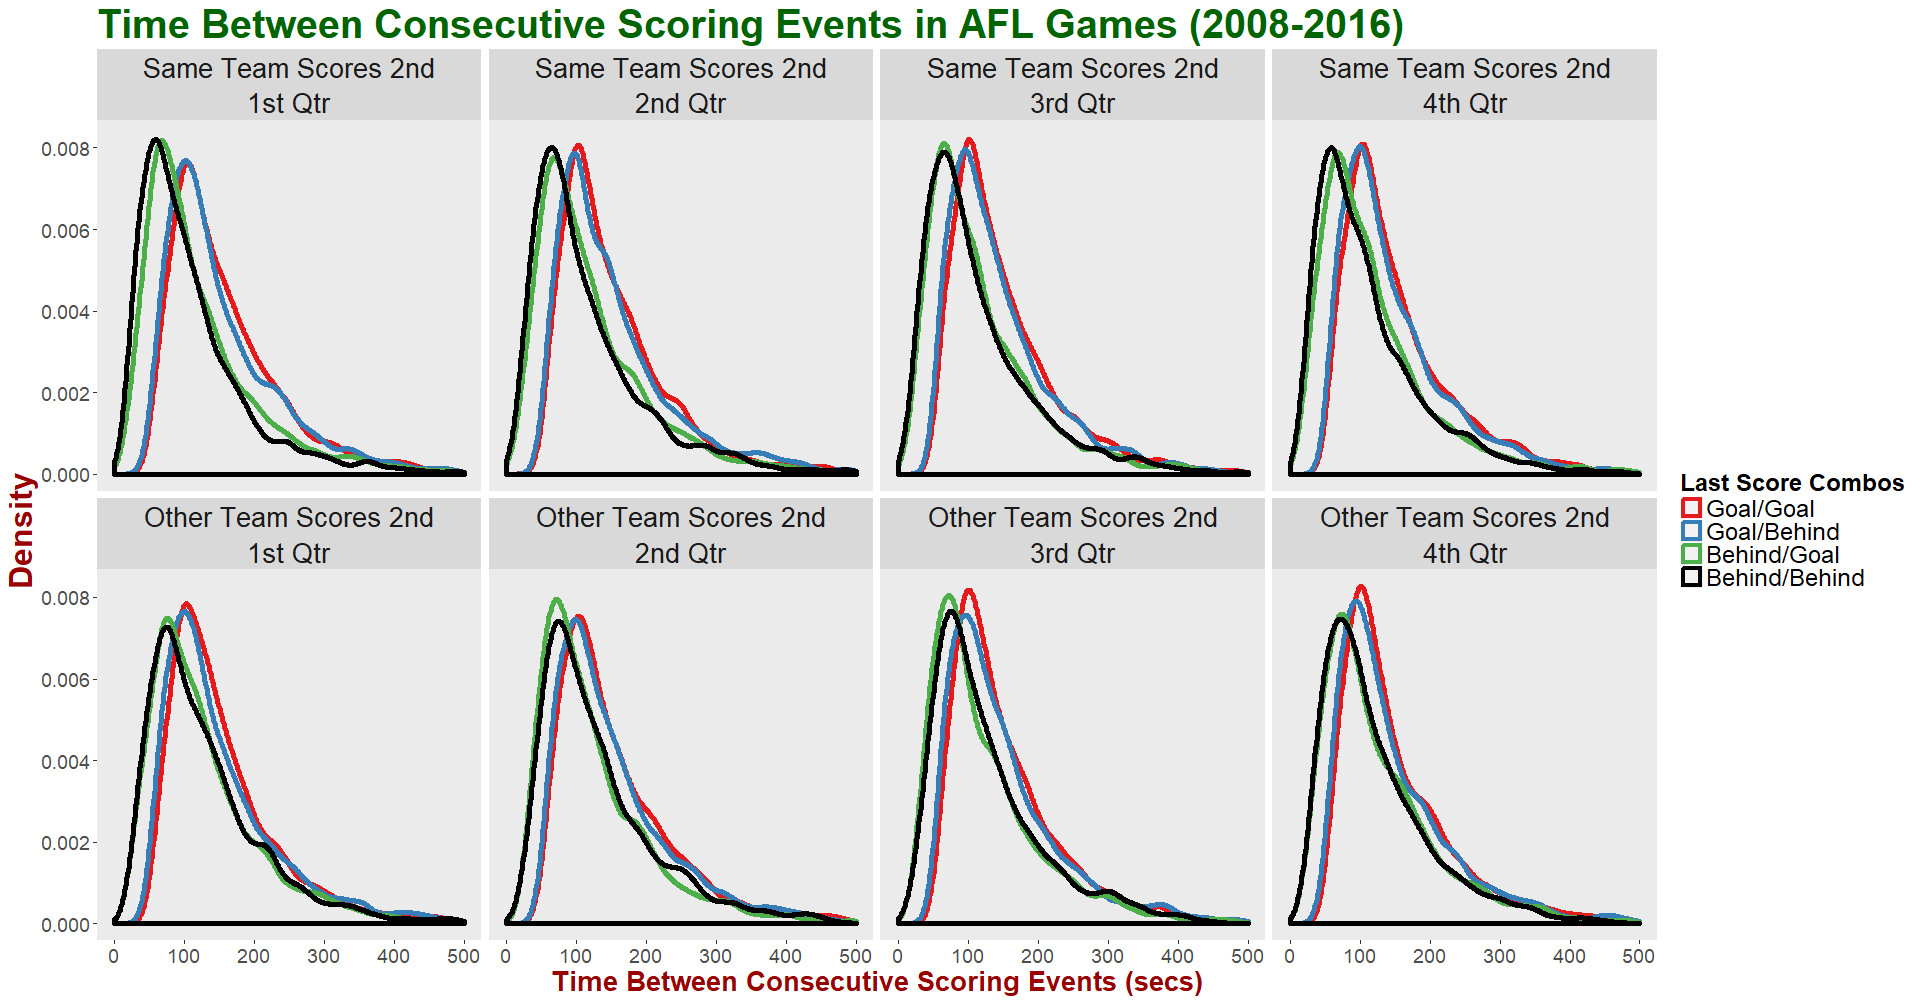 Time Between Scores - Facet by Qtr and Team Score Sequence and Group by Score Combos.png